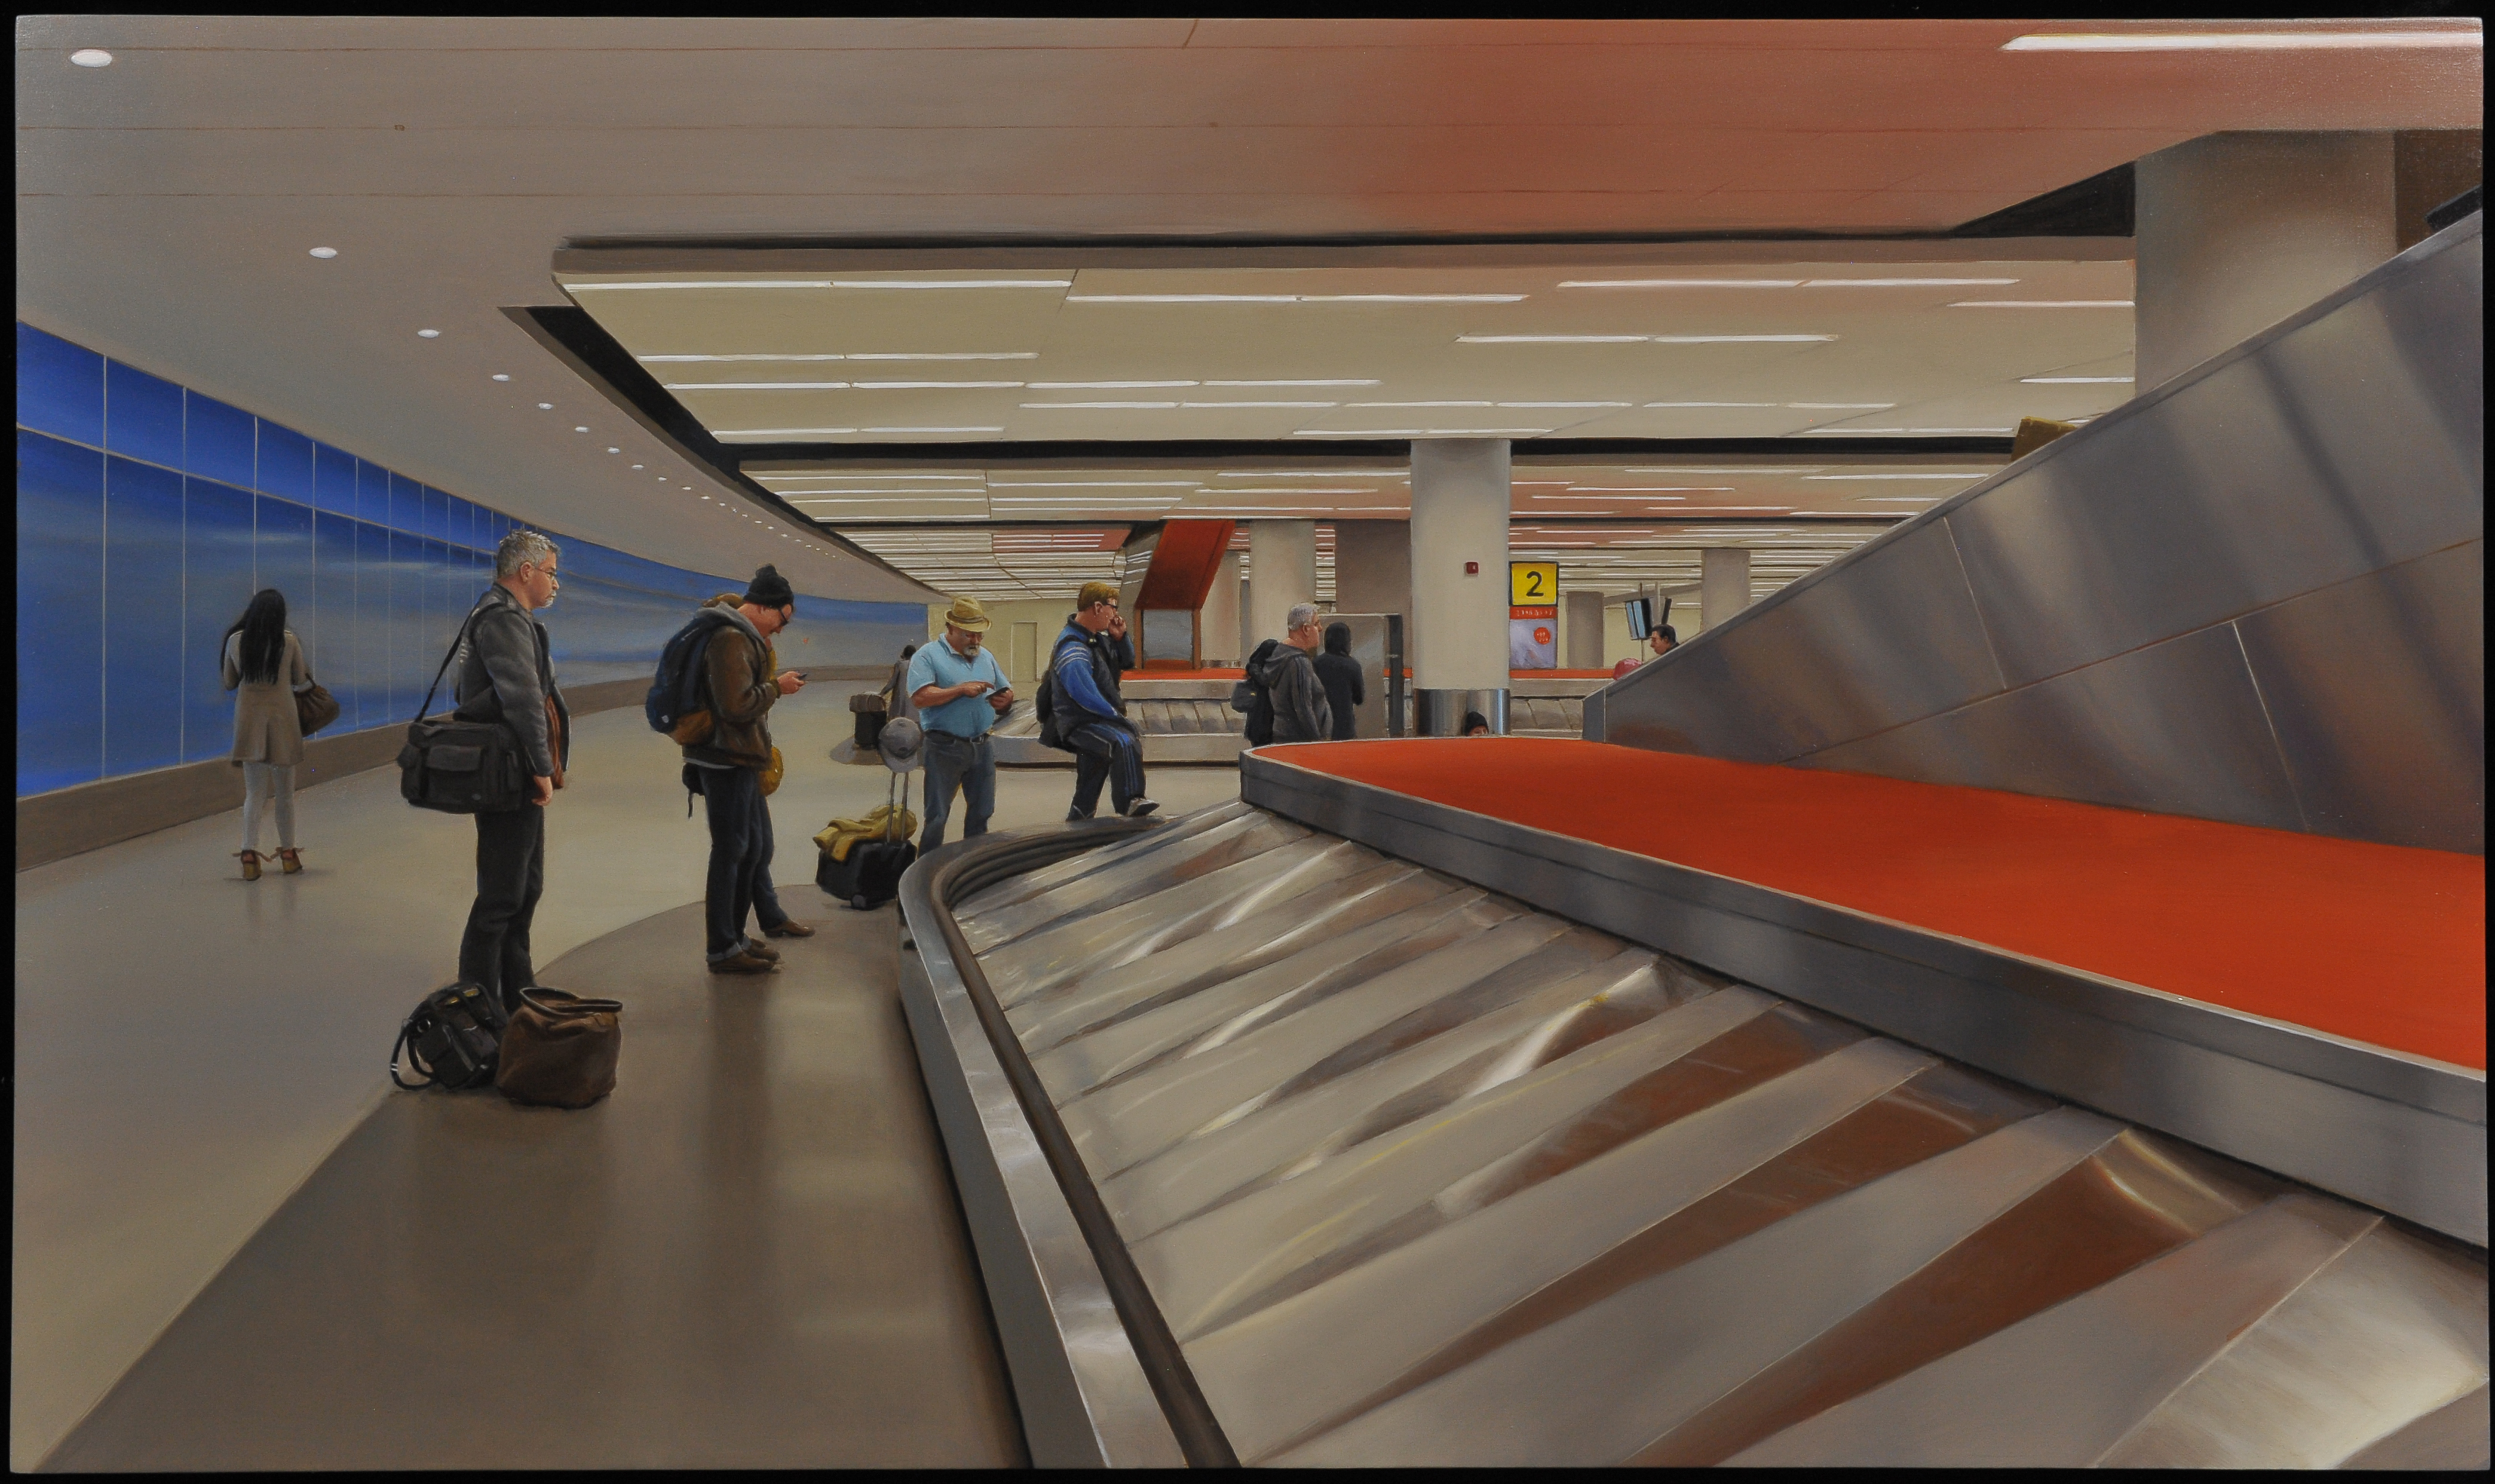 Marc Trujillo, John F Kennedy Internation Airport, 2015, oil on panel. Courtesy of the artist